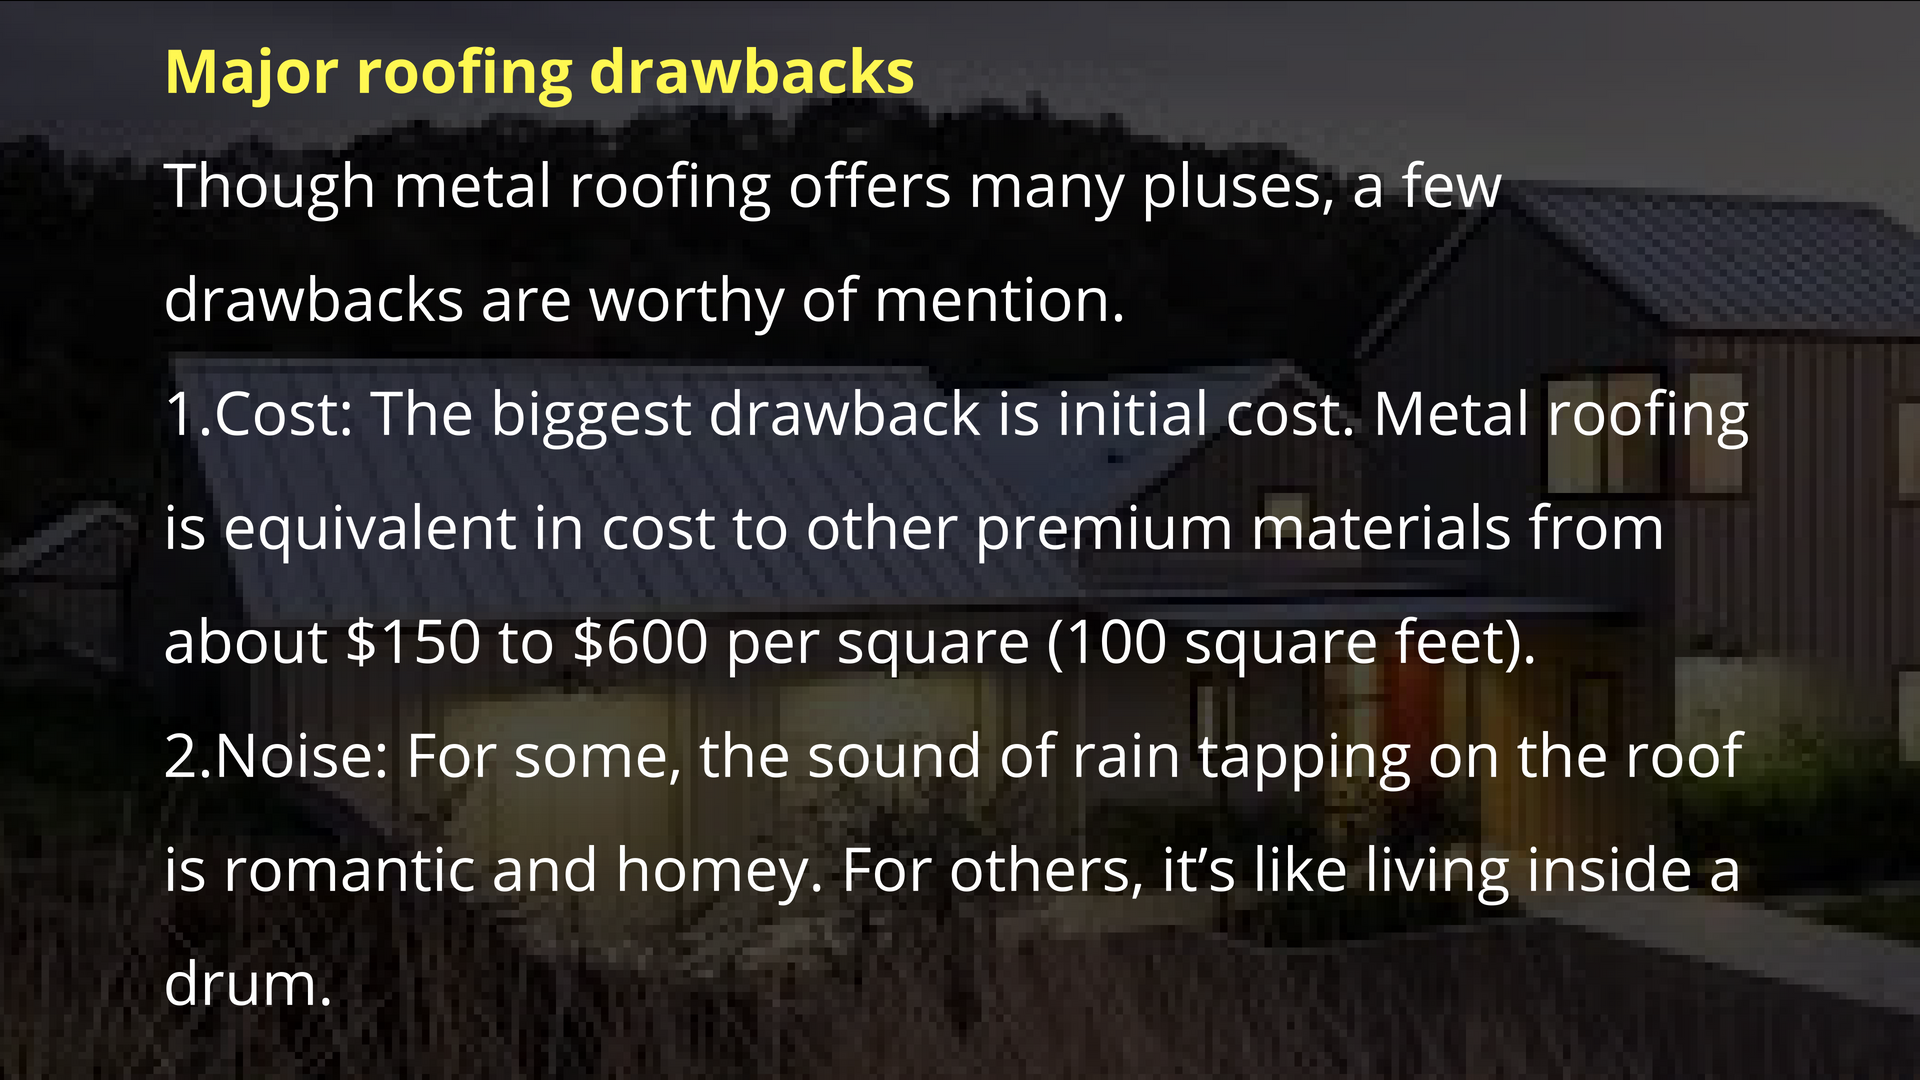 Pin By Accord Steel On Metal Roofing On Homes And Industries Pros And Cons Metal Roof Sound Of Rain Roofing